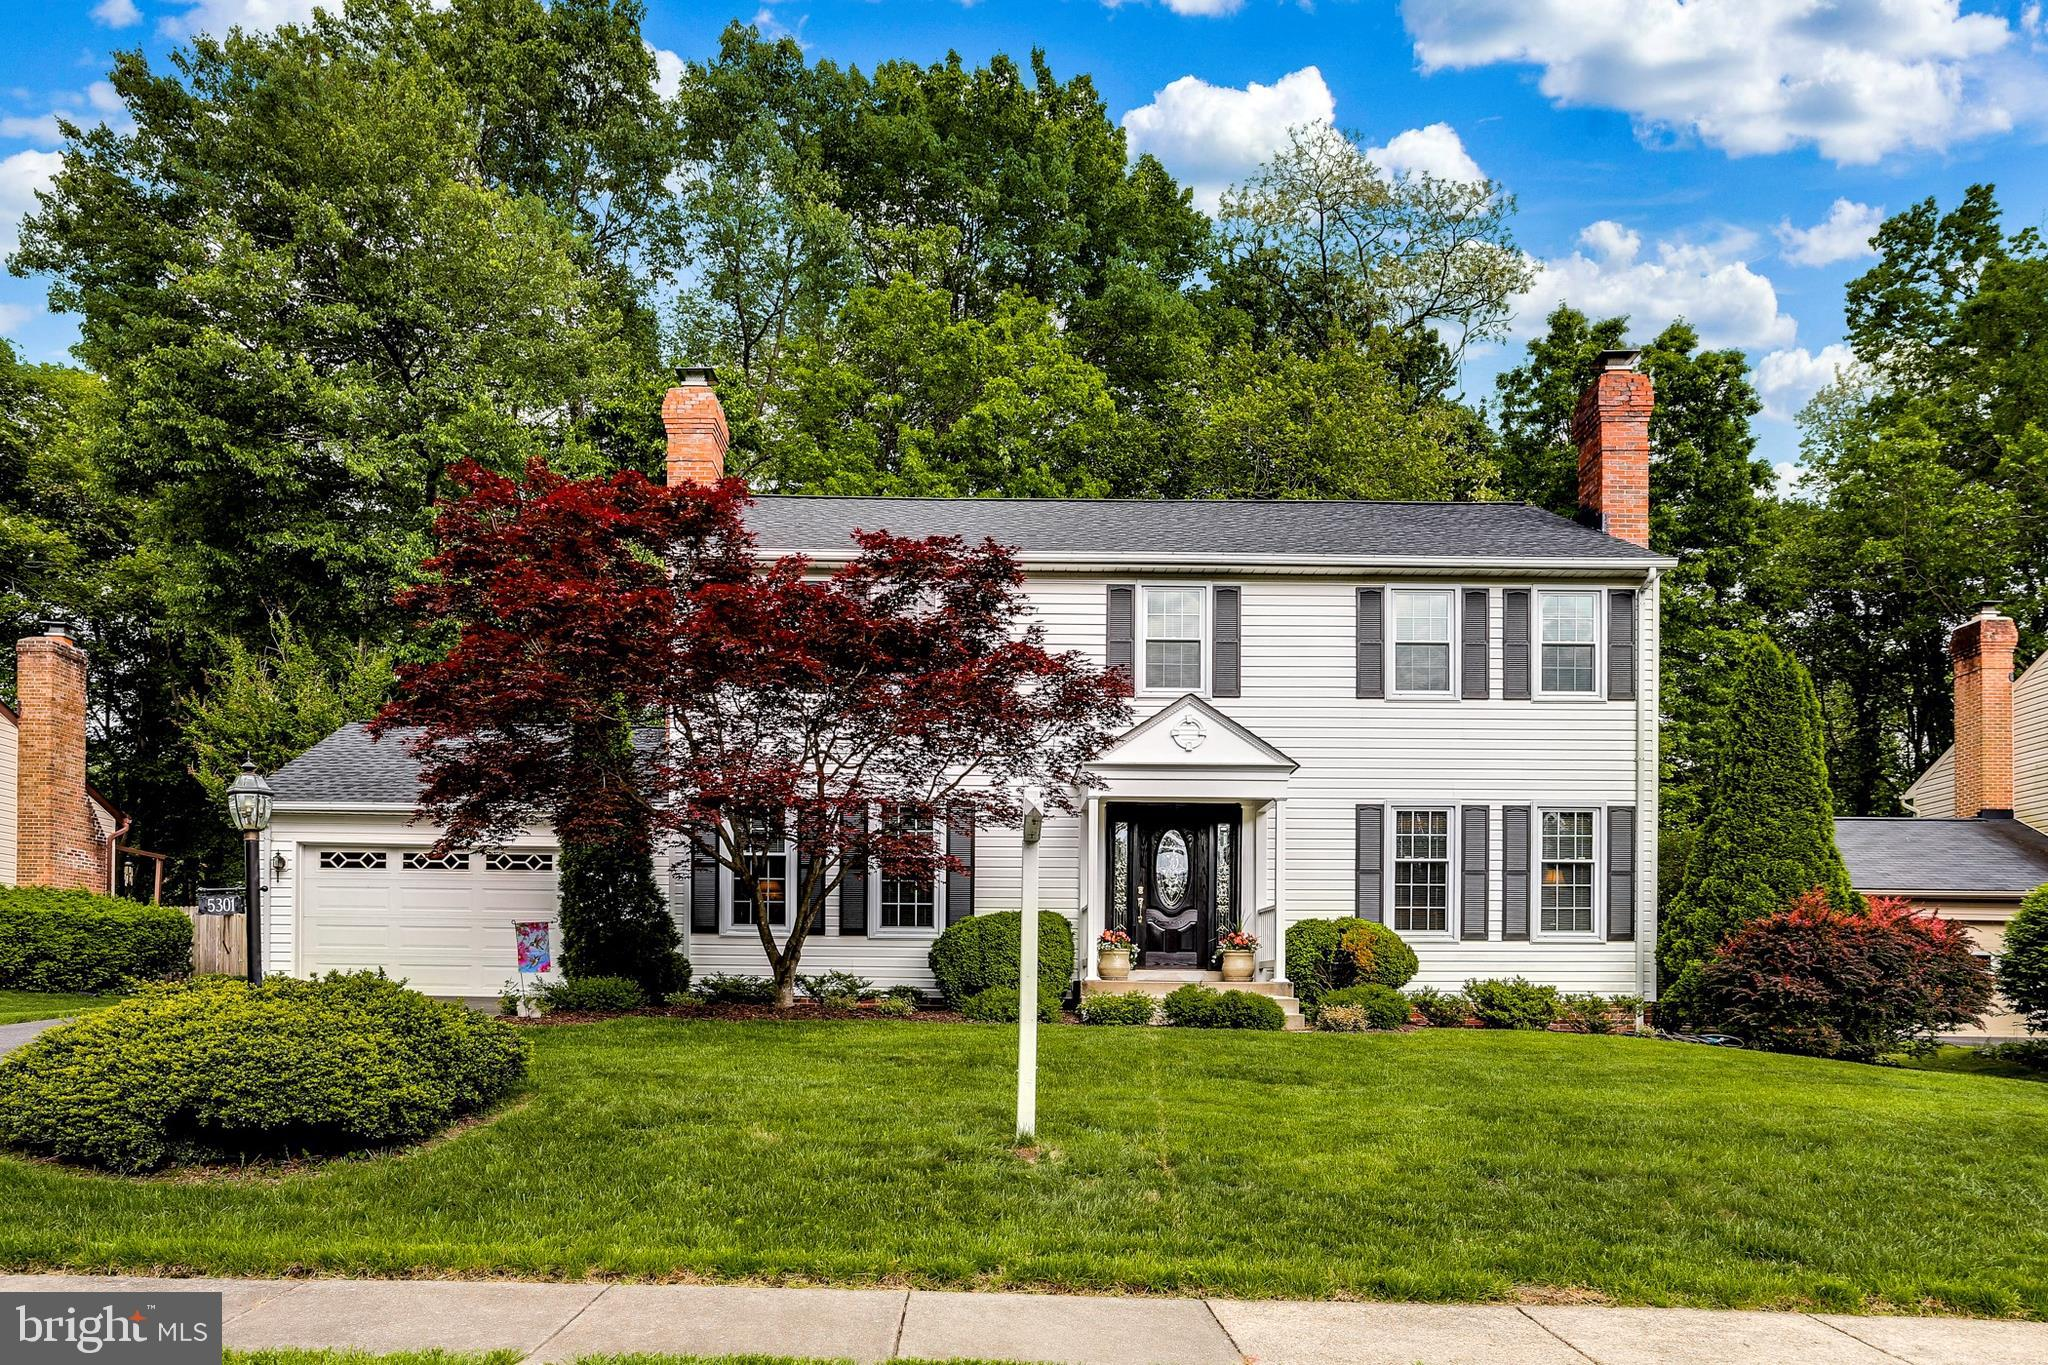 5301 5 FINGERS WAY, COLUMBIA, MD 21045